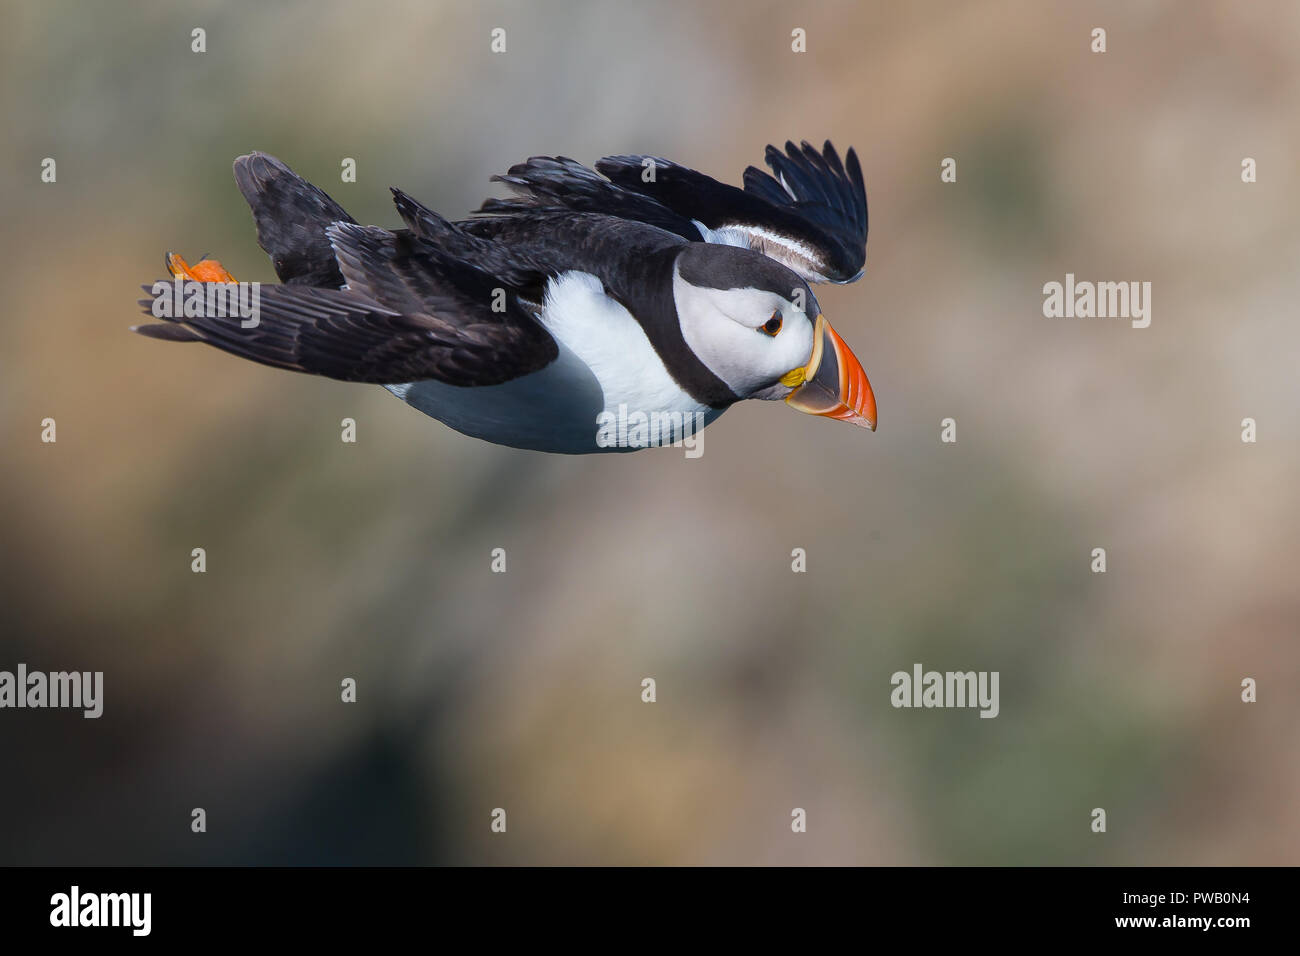 High angle, aerial, close-up side view of wild puffin seabird (Fratercula arctica) isolated hovering outdoors in breeze, soft-focus cliffs background. - Stock Image